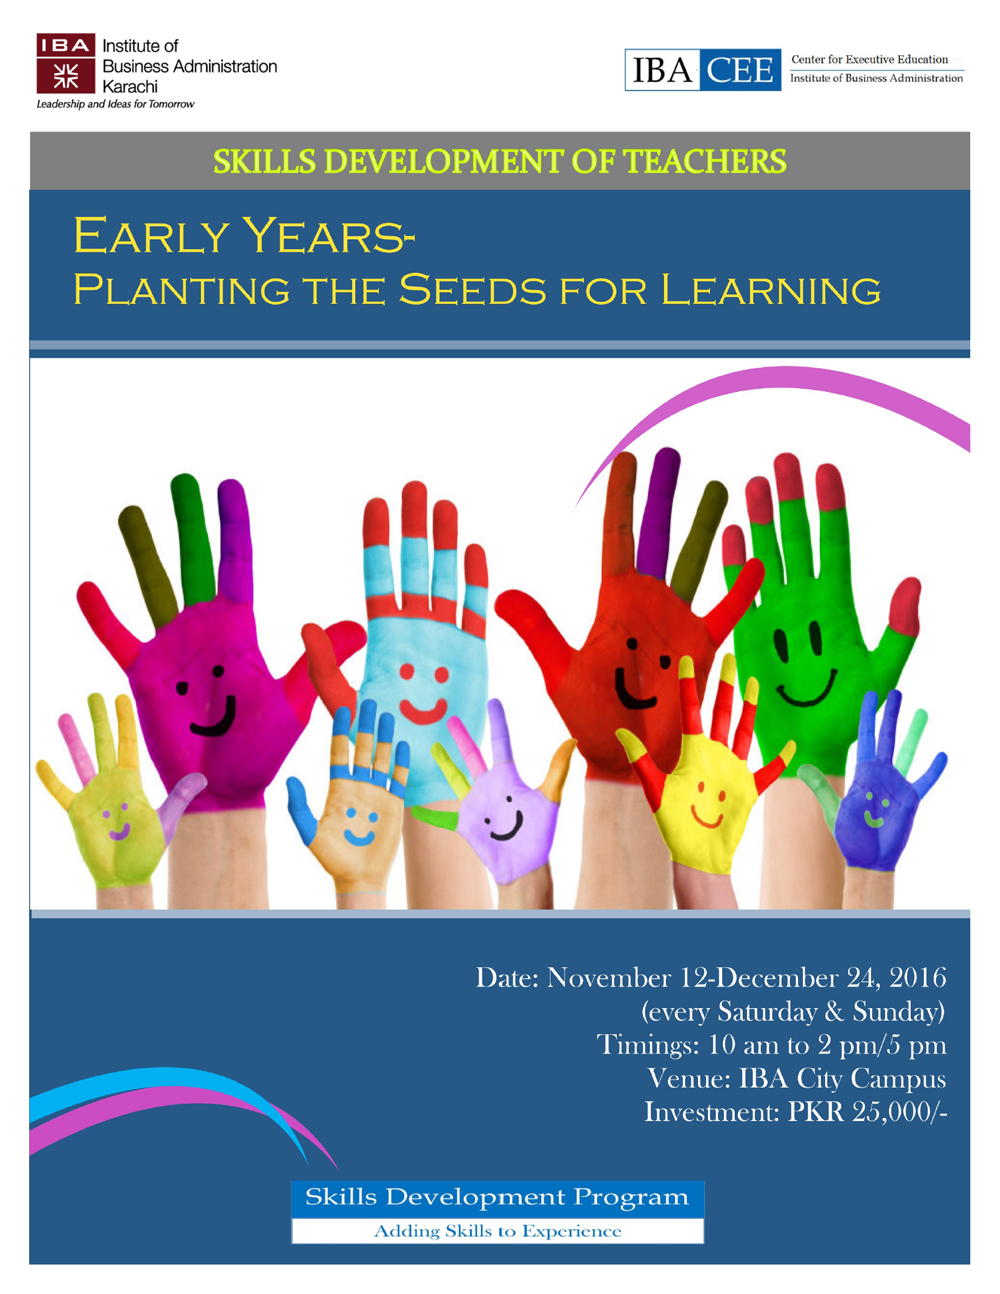 Early Years-Planting the Seeds for Learning